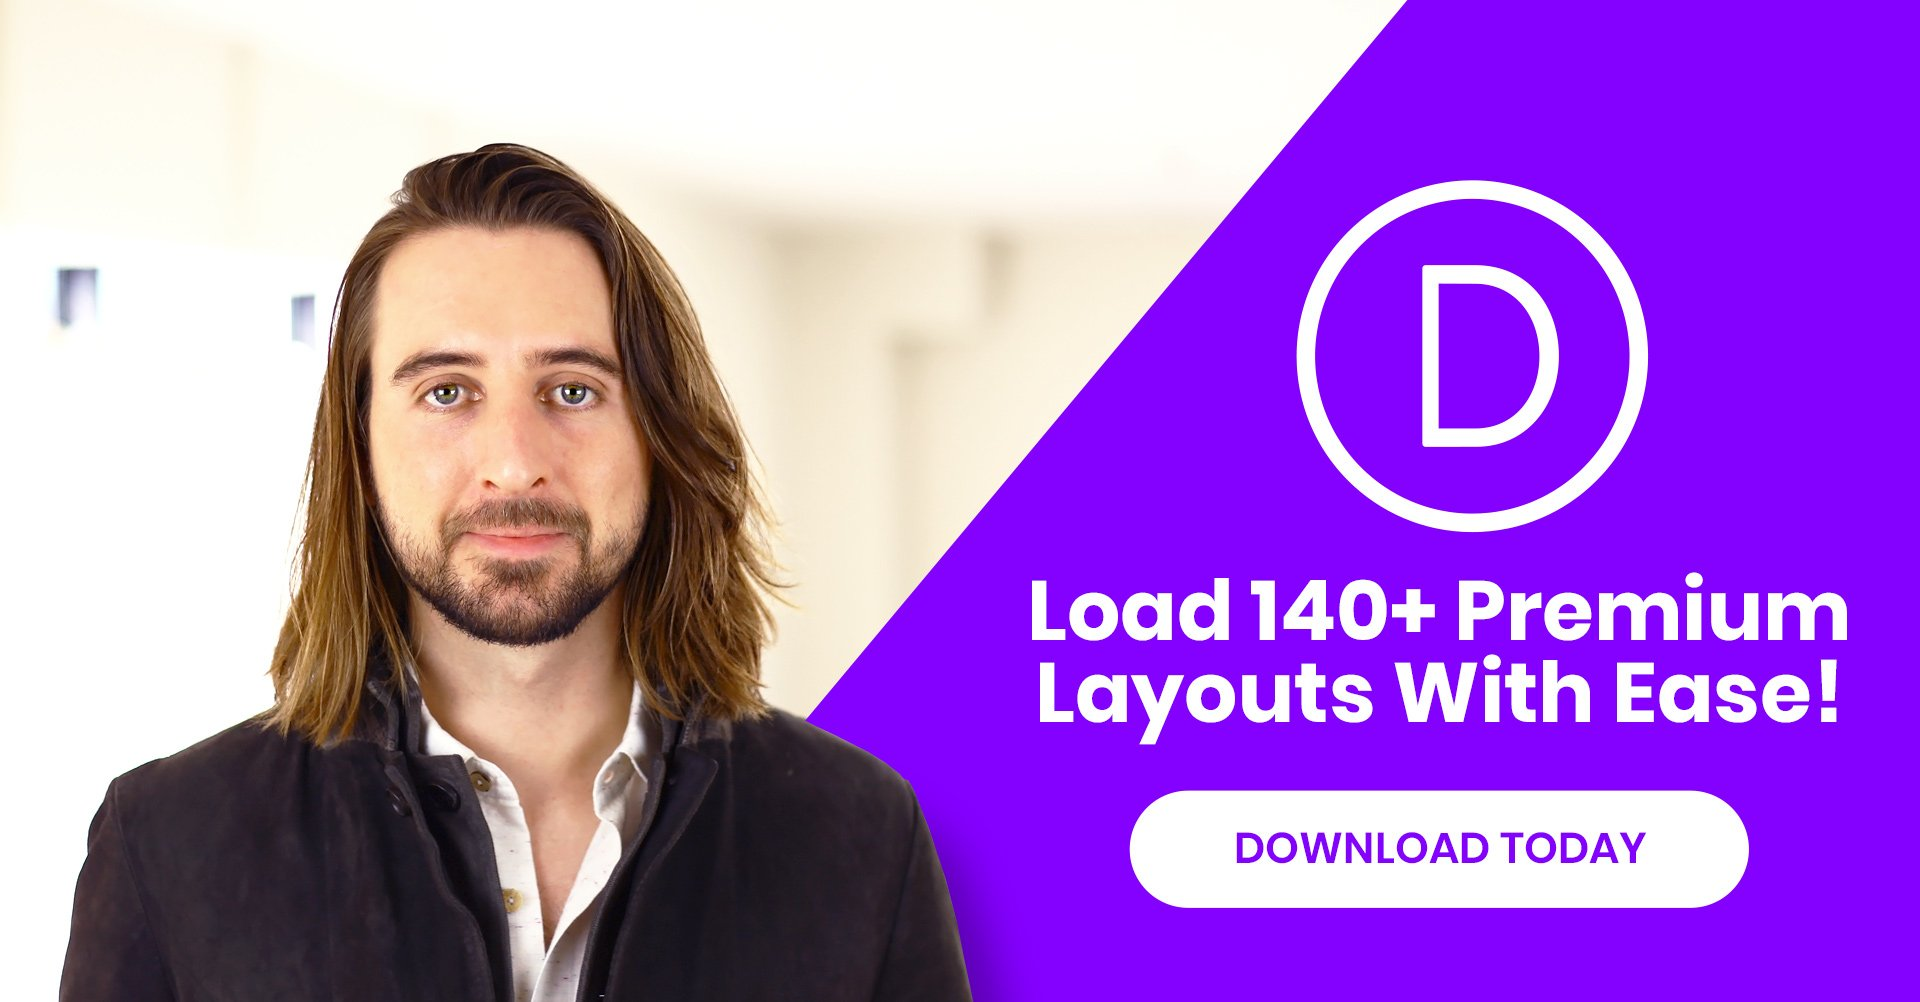 Over 140 Amazing Divi Layouts Now Available Right Inside The Divi Builder